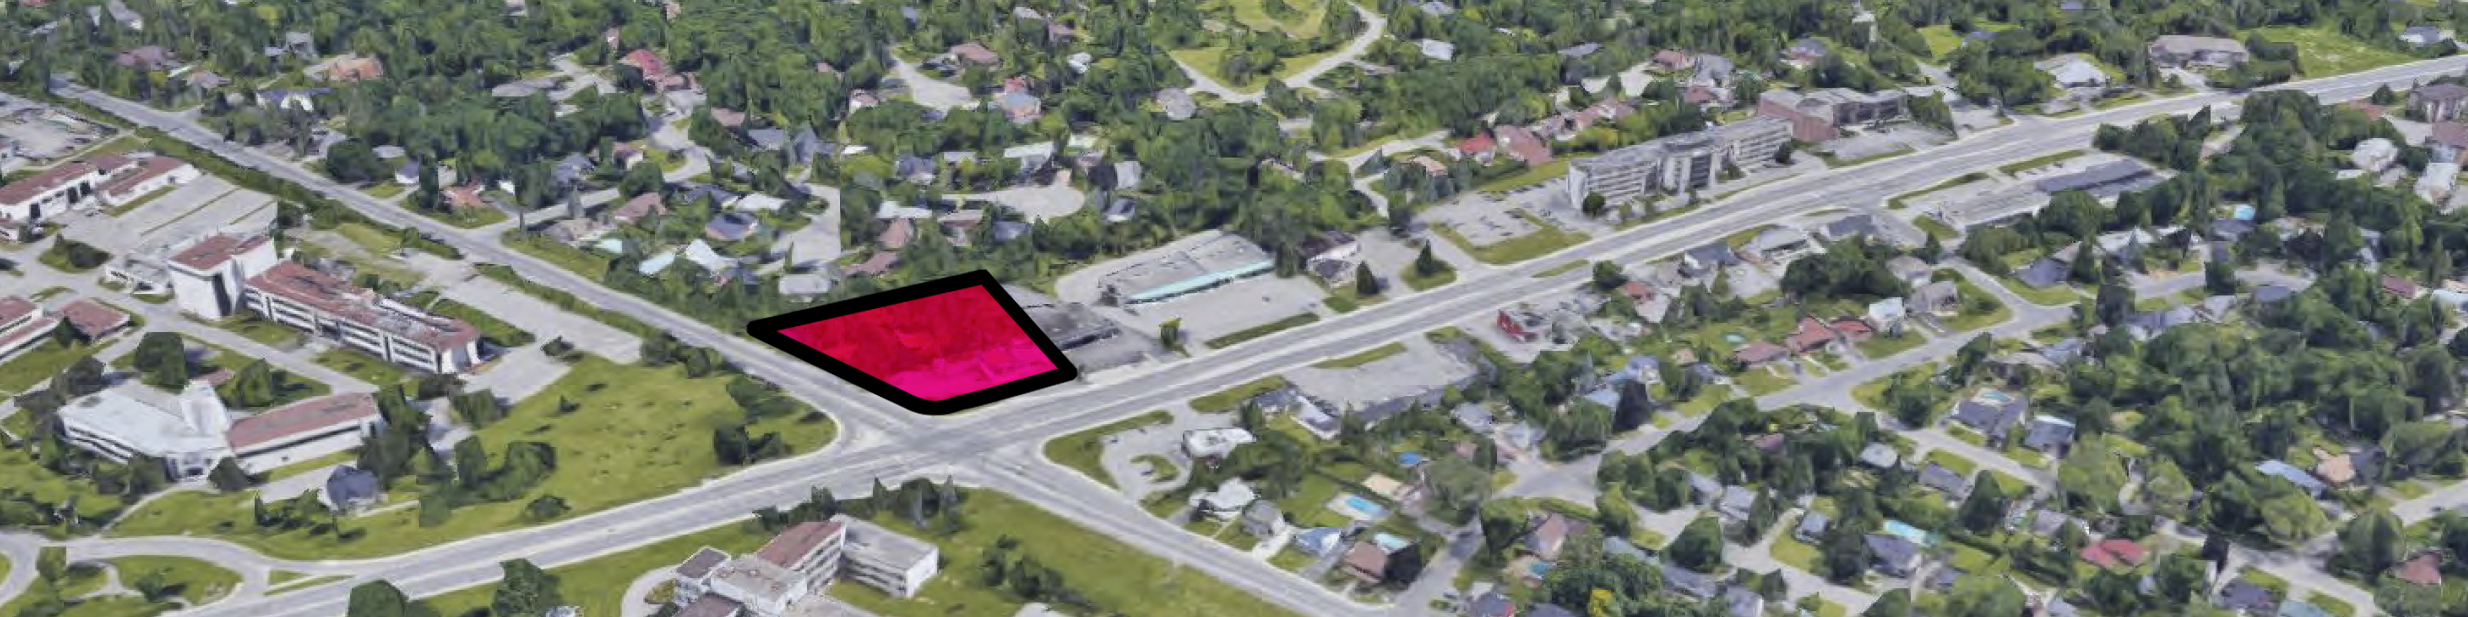 Site of proposed 26-storey tower at NE Corner of Blair and Montreal Roads